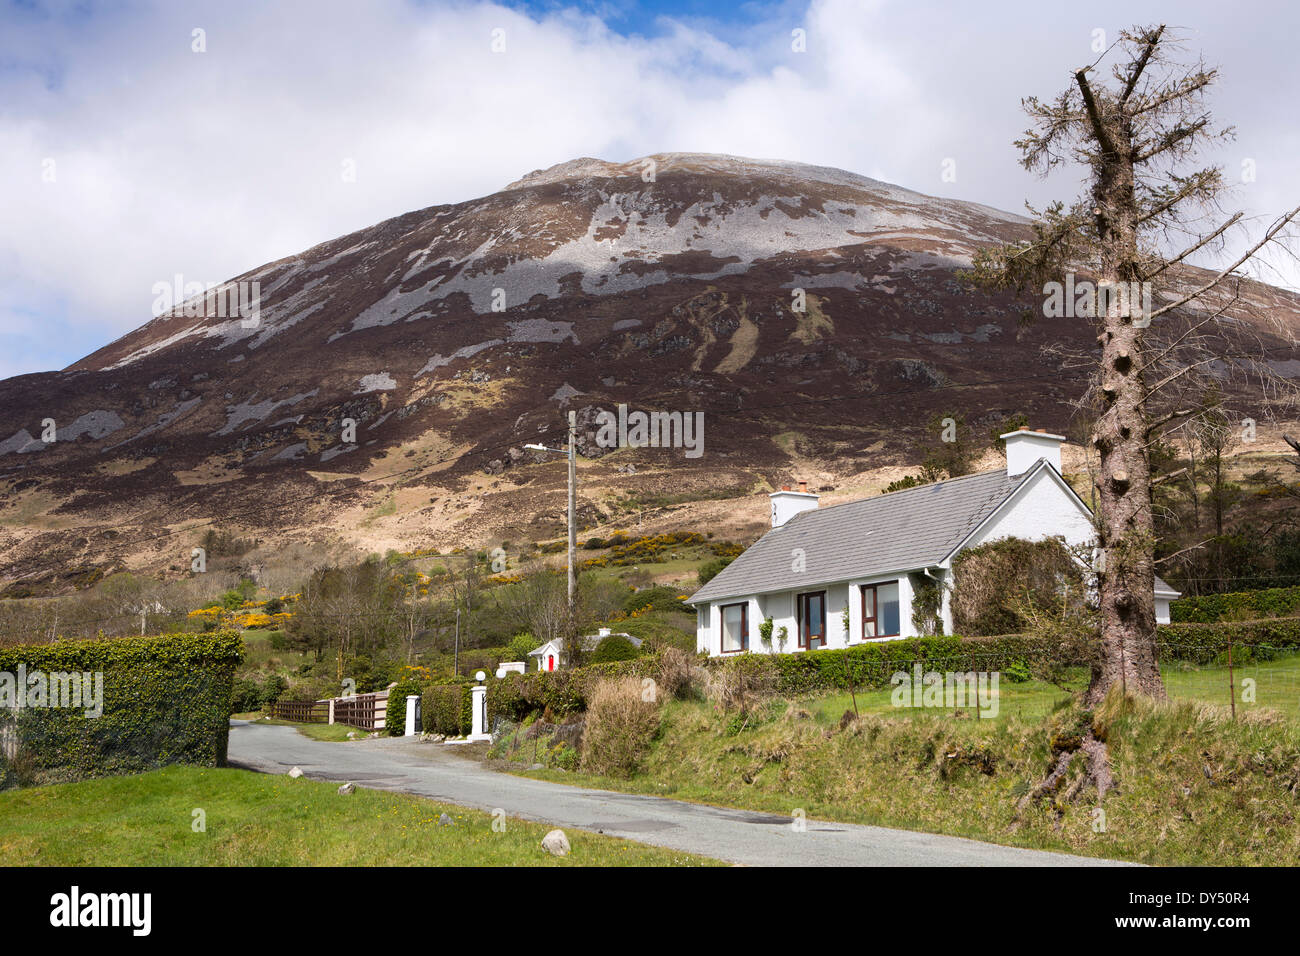 Ireland, Co Donegal, Dunlewey, cottage below Mount Errigal, Ireland's second highest Mountain - Stock Image